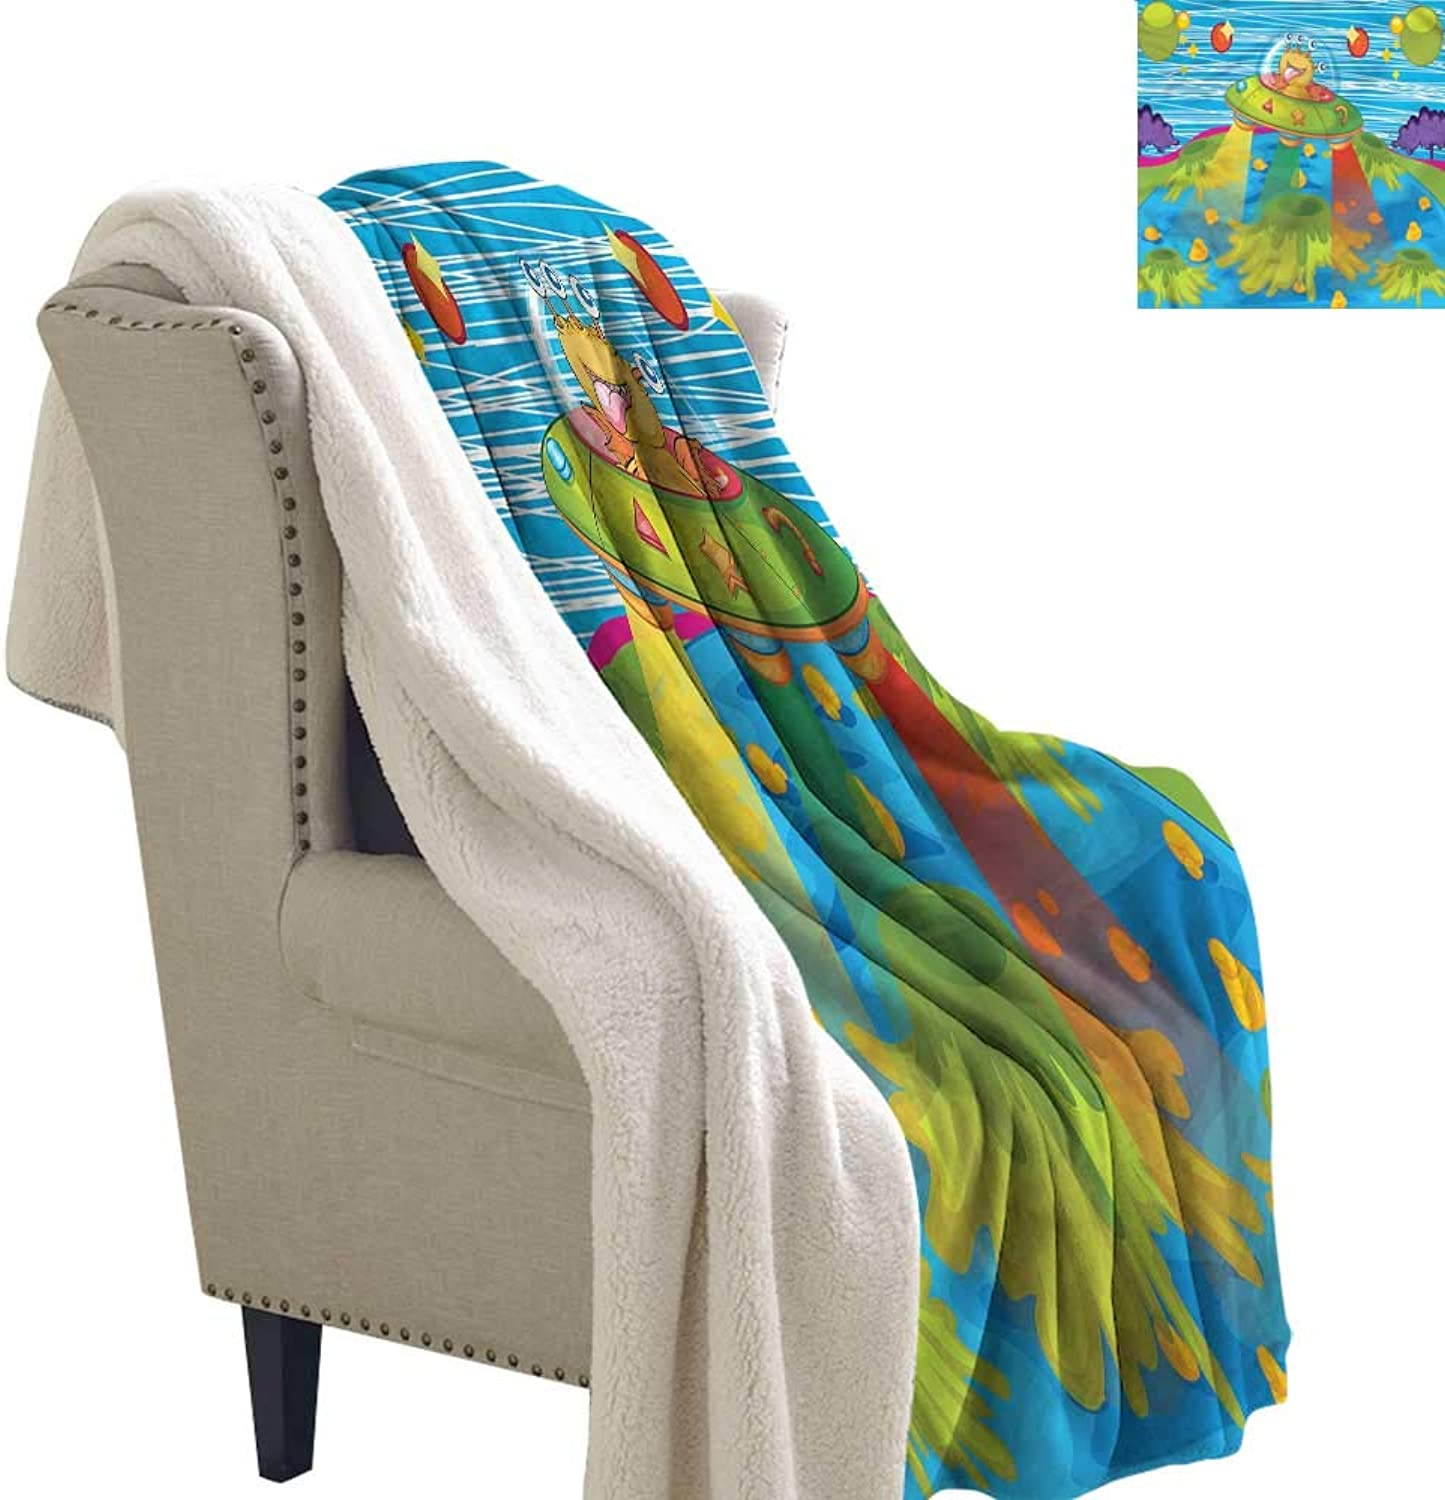 Beihai1Sun Outer Space Cozy Flannel Blanket for Kids in Spaceship Bed Cover 60x32 Inch